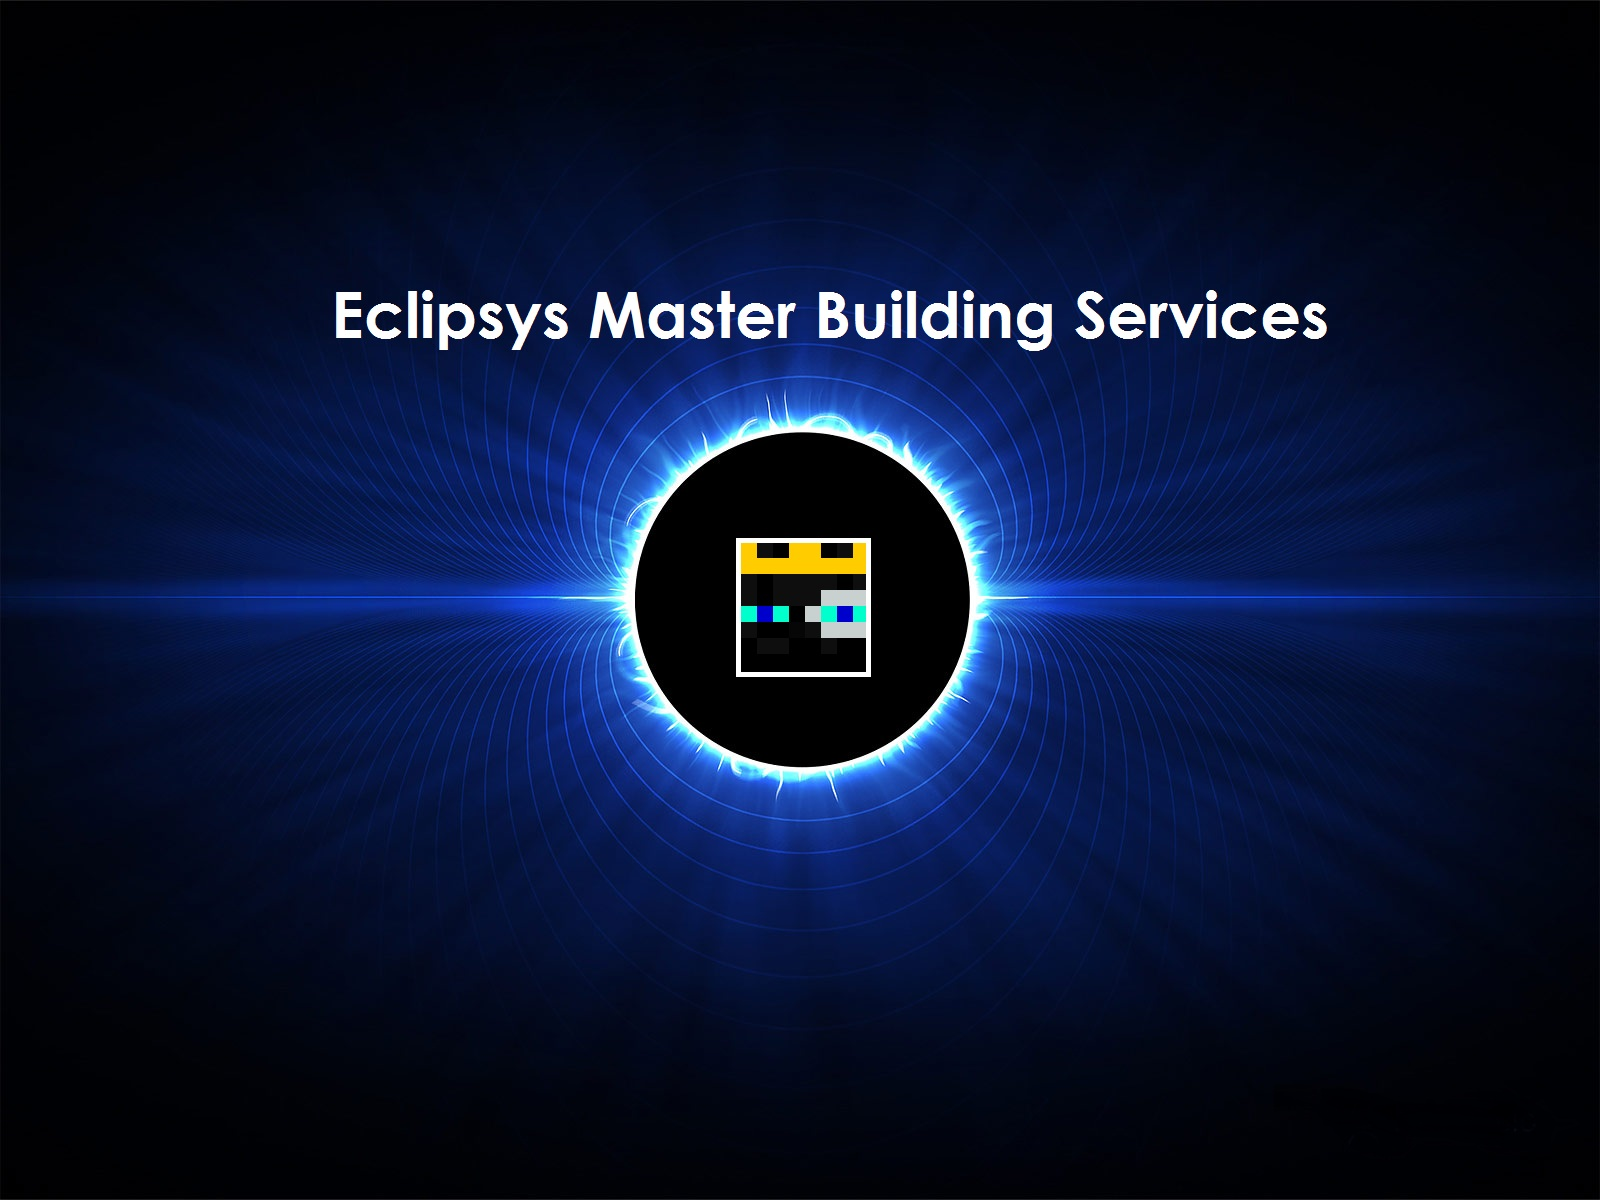 Eclipsys master building services.jpg